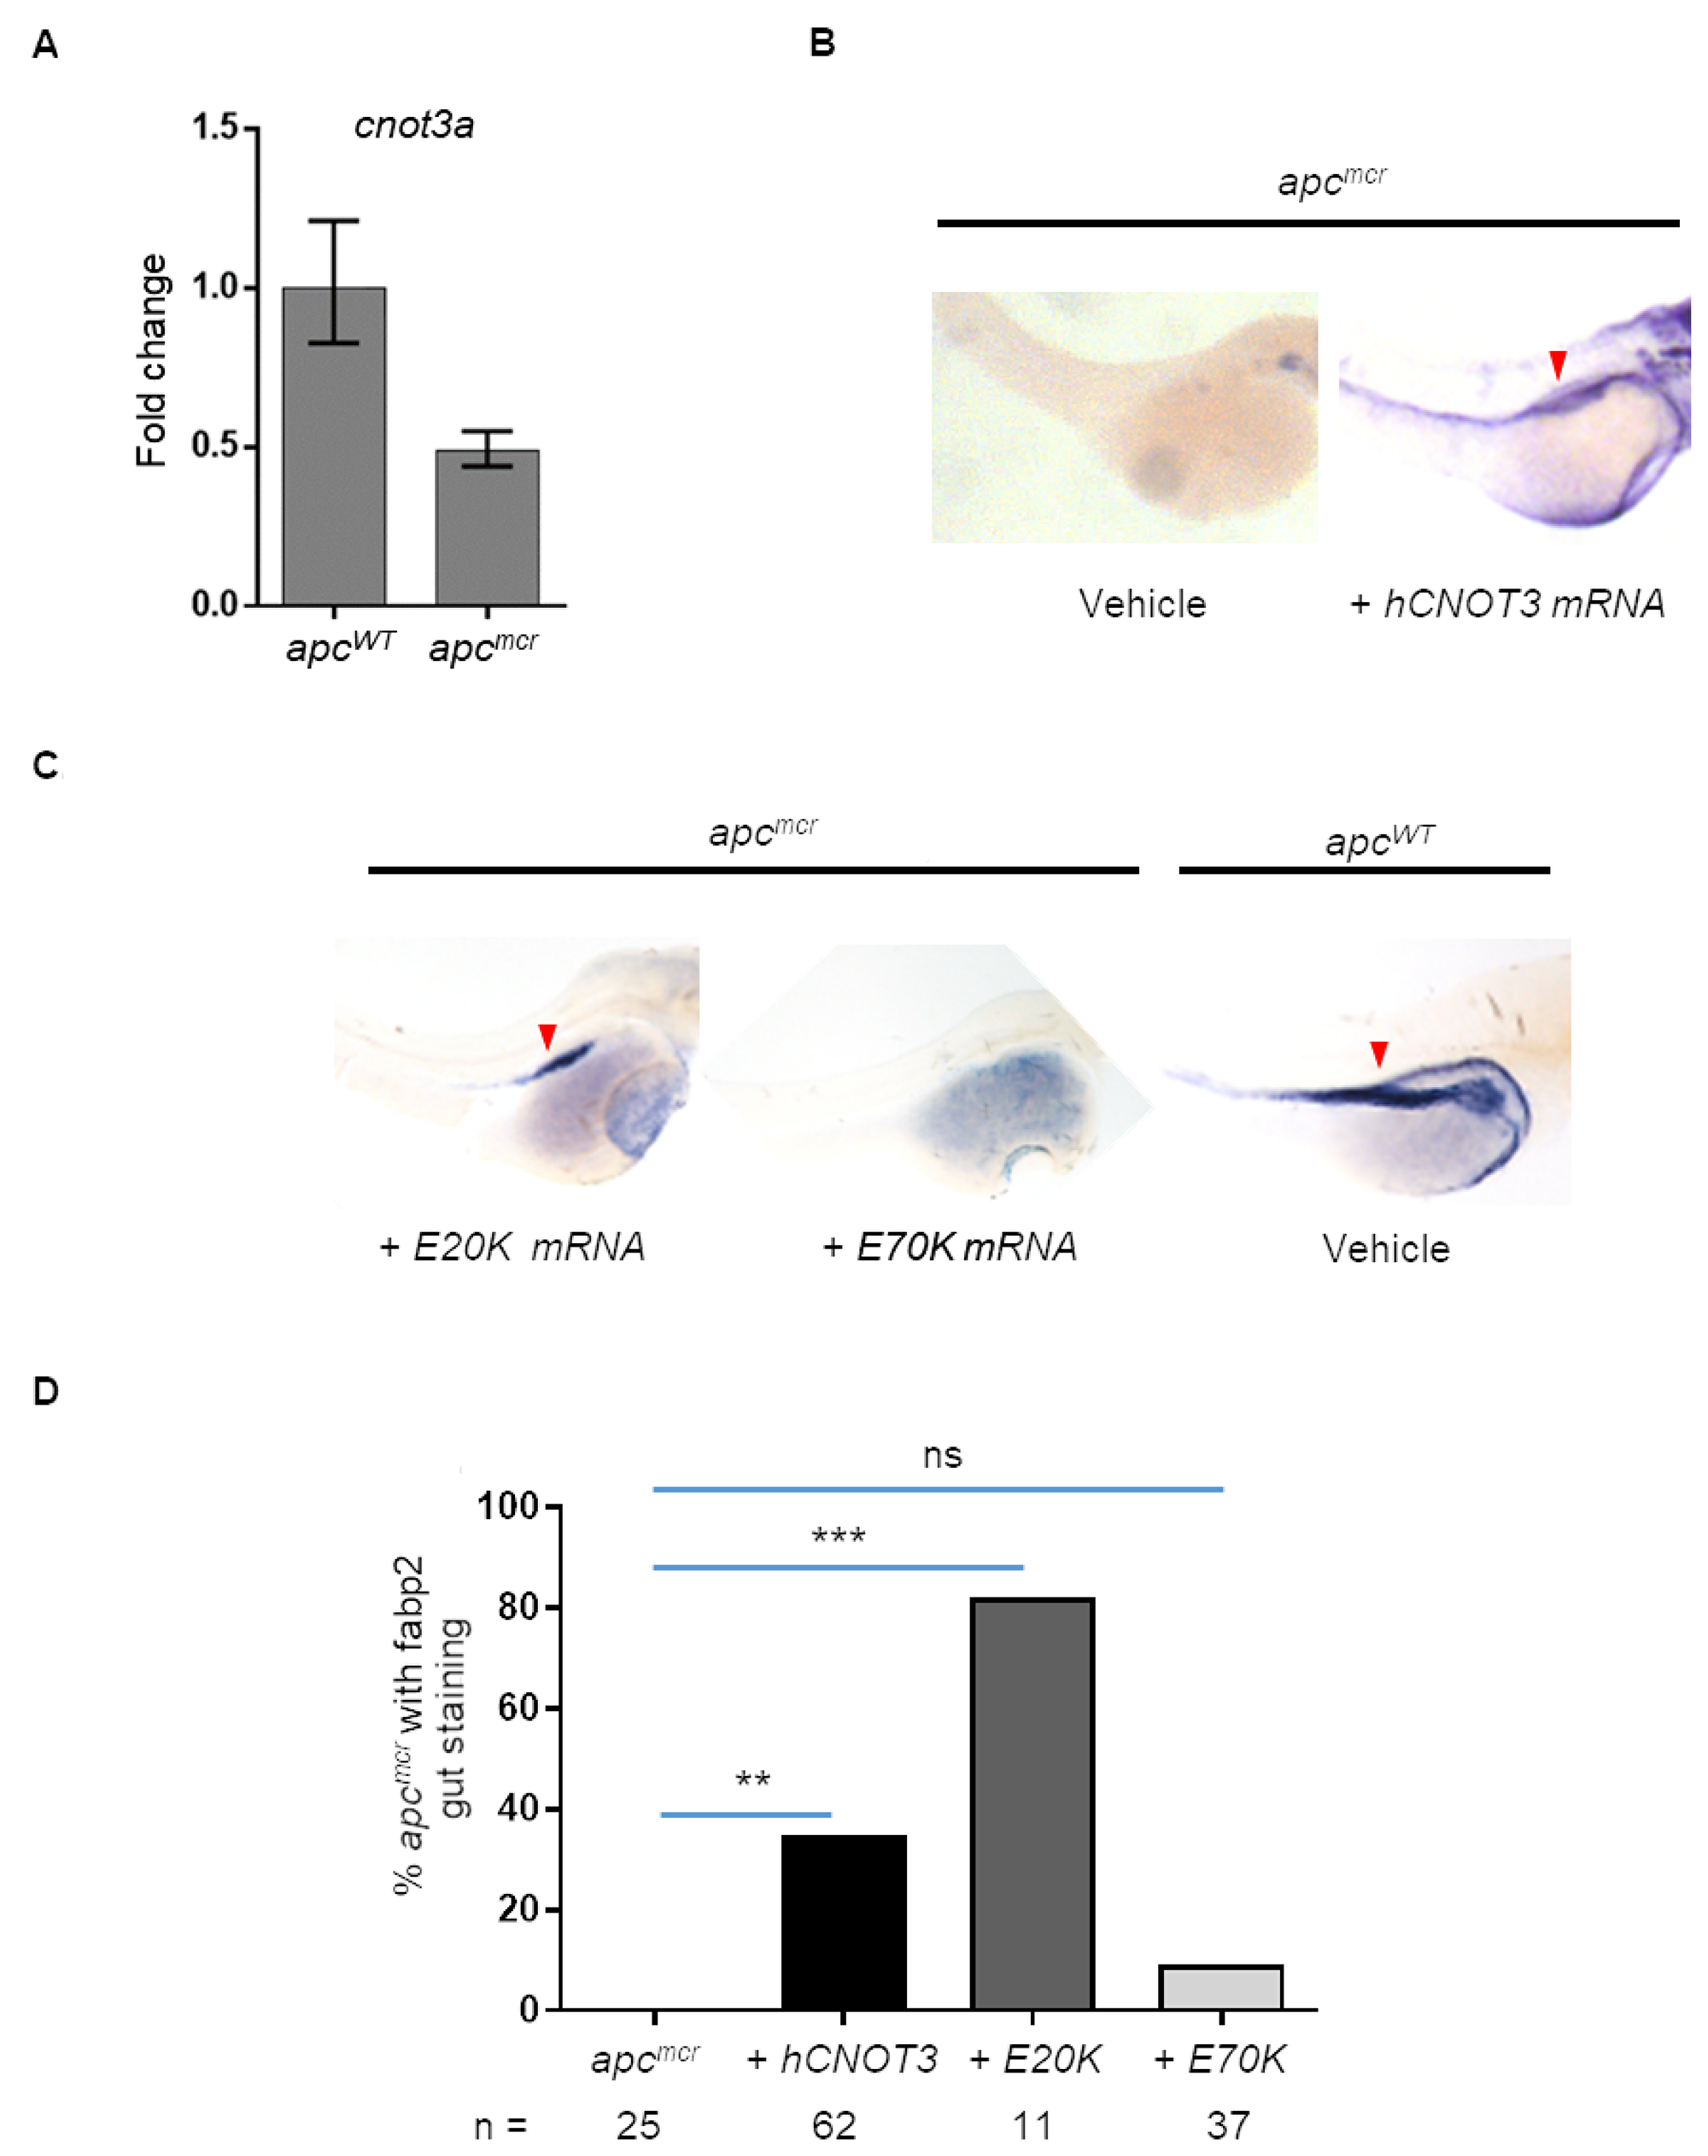 Human CNOT3 rescues intestinal defects in zebrafish apcmcr embryos.